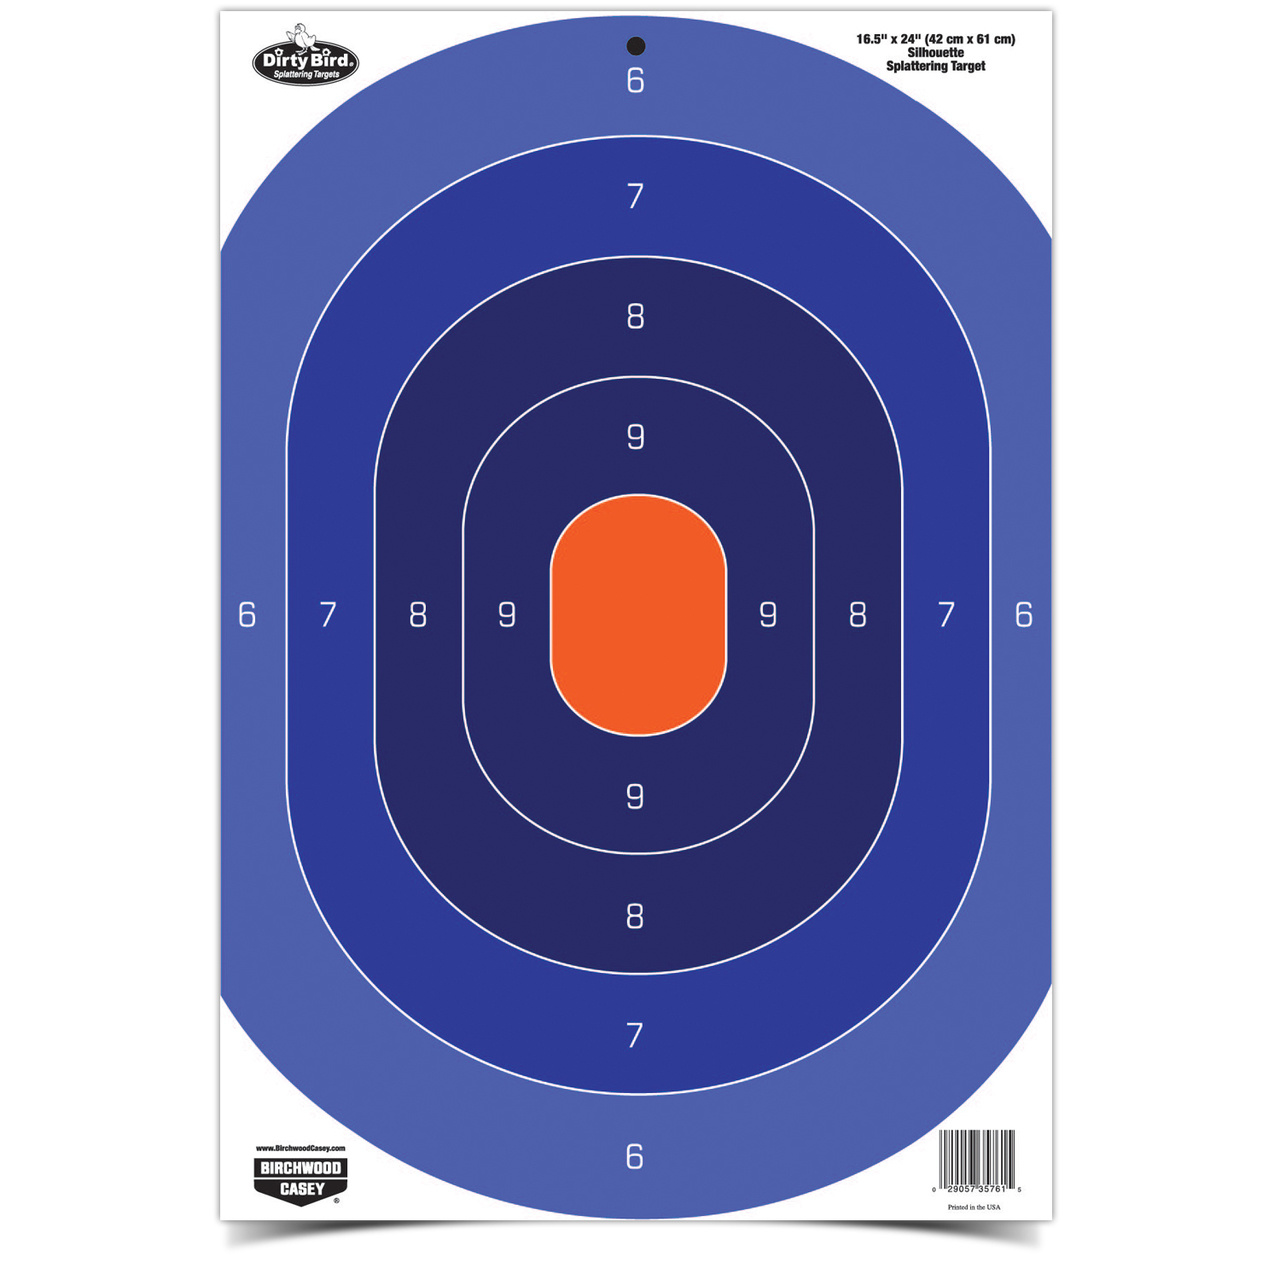 "Birchwood Casey Birchwood Casey Dirty Bird Splatting Target 16.5""x24"" Silhouete Blue/Orange"